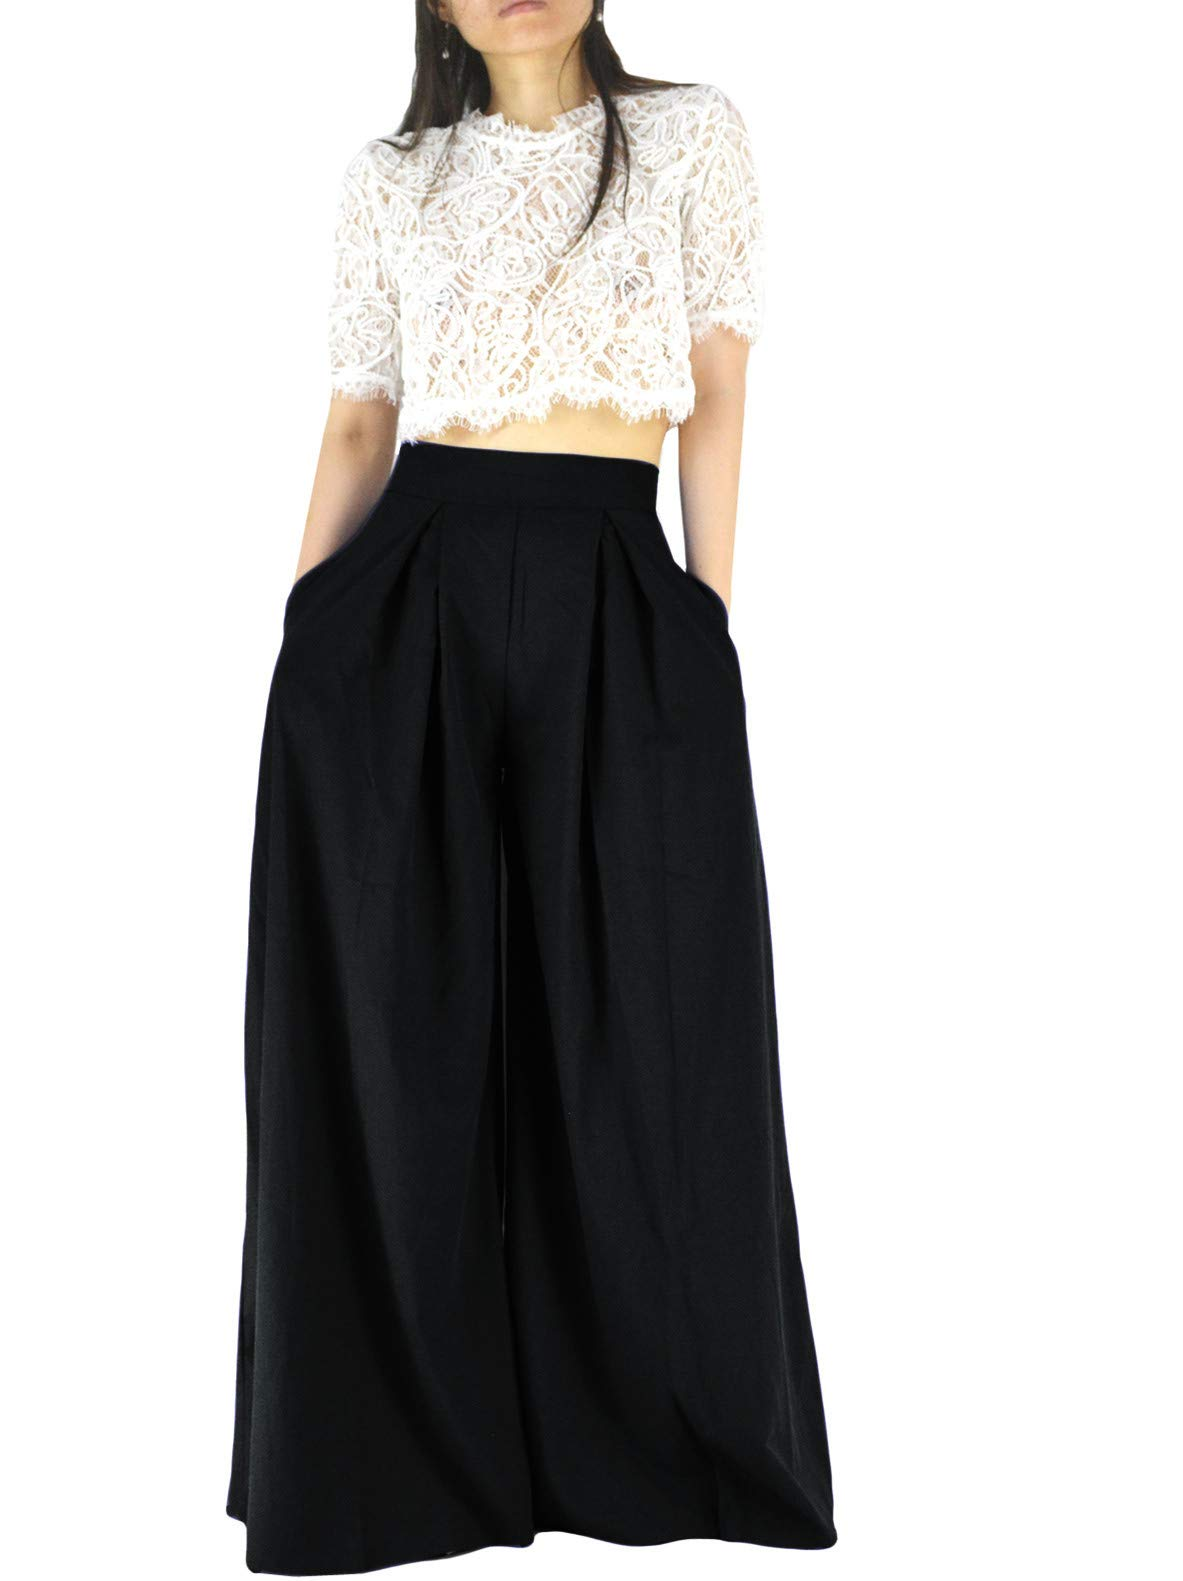 YSJERA Women's Sexy Semi Sheer Short Sleeve Lace Crop Top w/High Waist Palazzo Pants 2 Pieces Jumpsuits (Black, S)